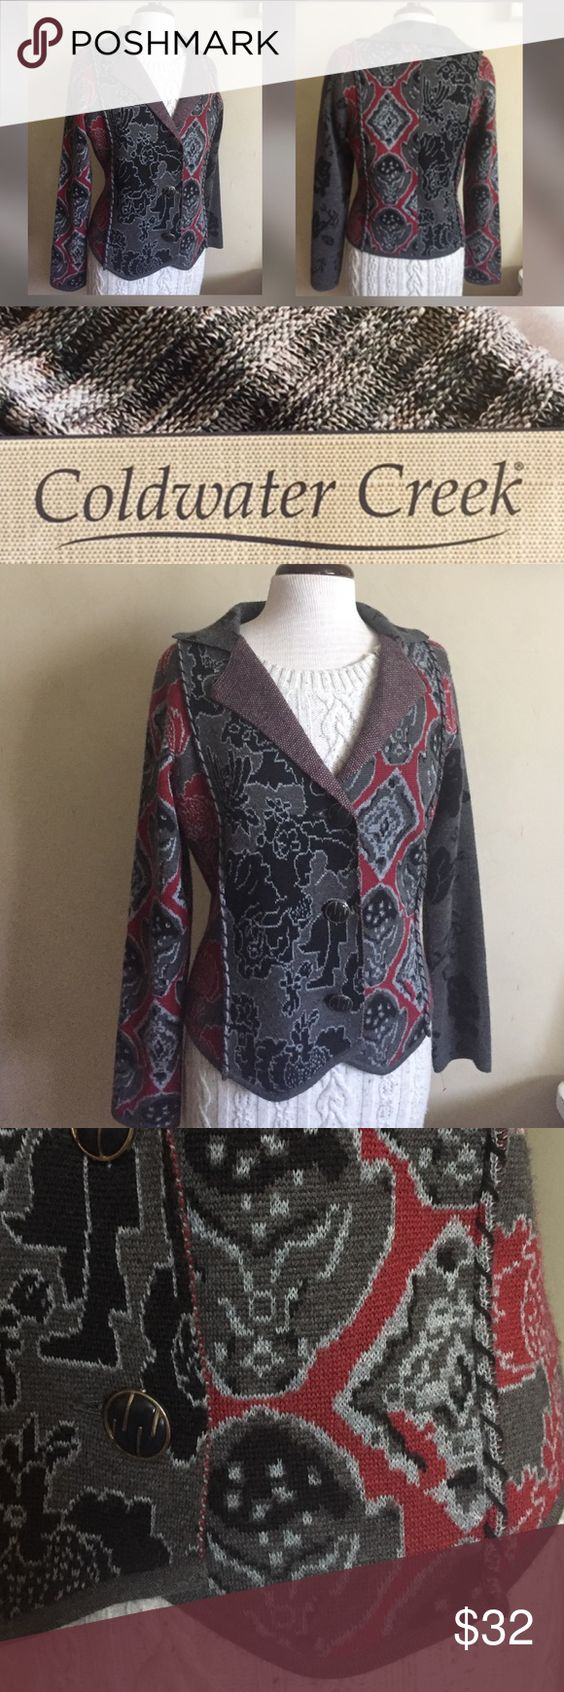 Coldwater Creek Cardigan Pretty patchwork style knitted cardigan. Beautiful combination of red, black and grey colors. In very good pre-owned condition. Coldwater Creek Sweaters Cardigans